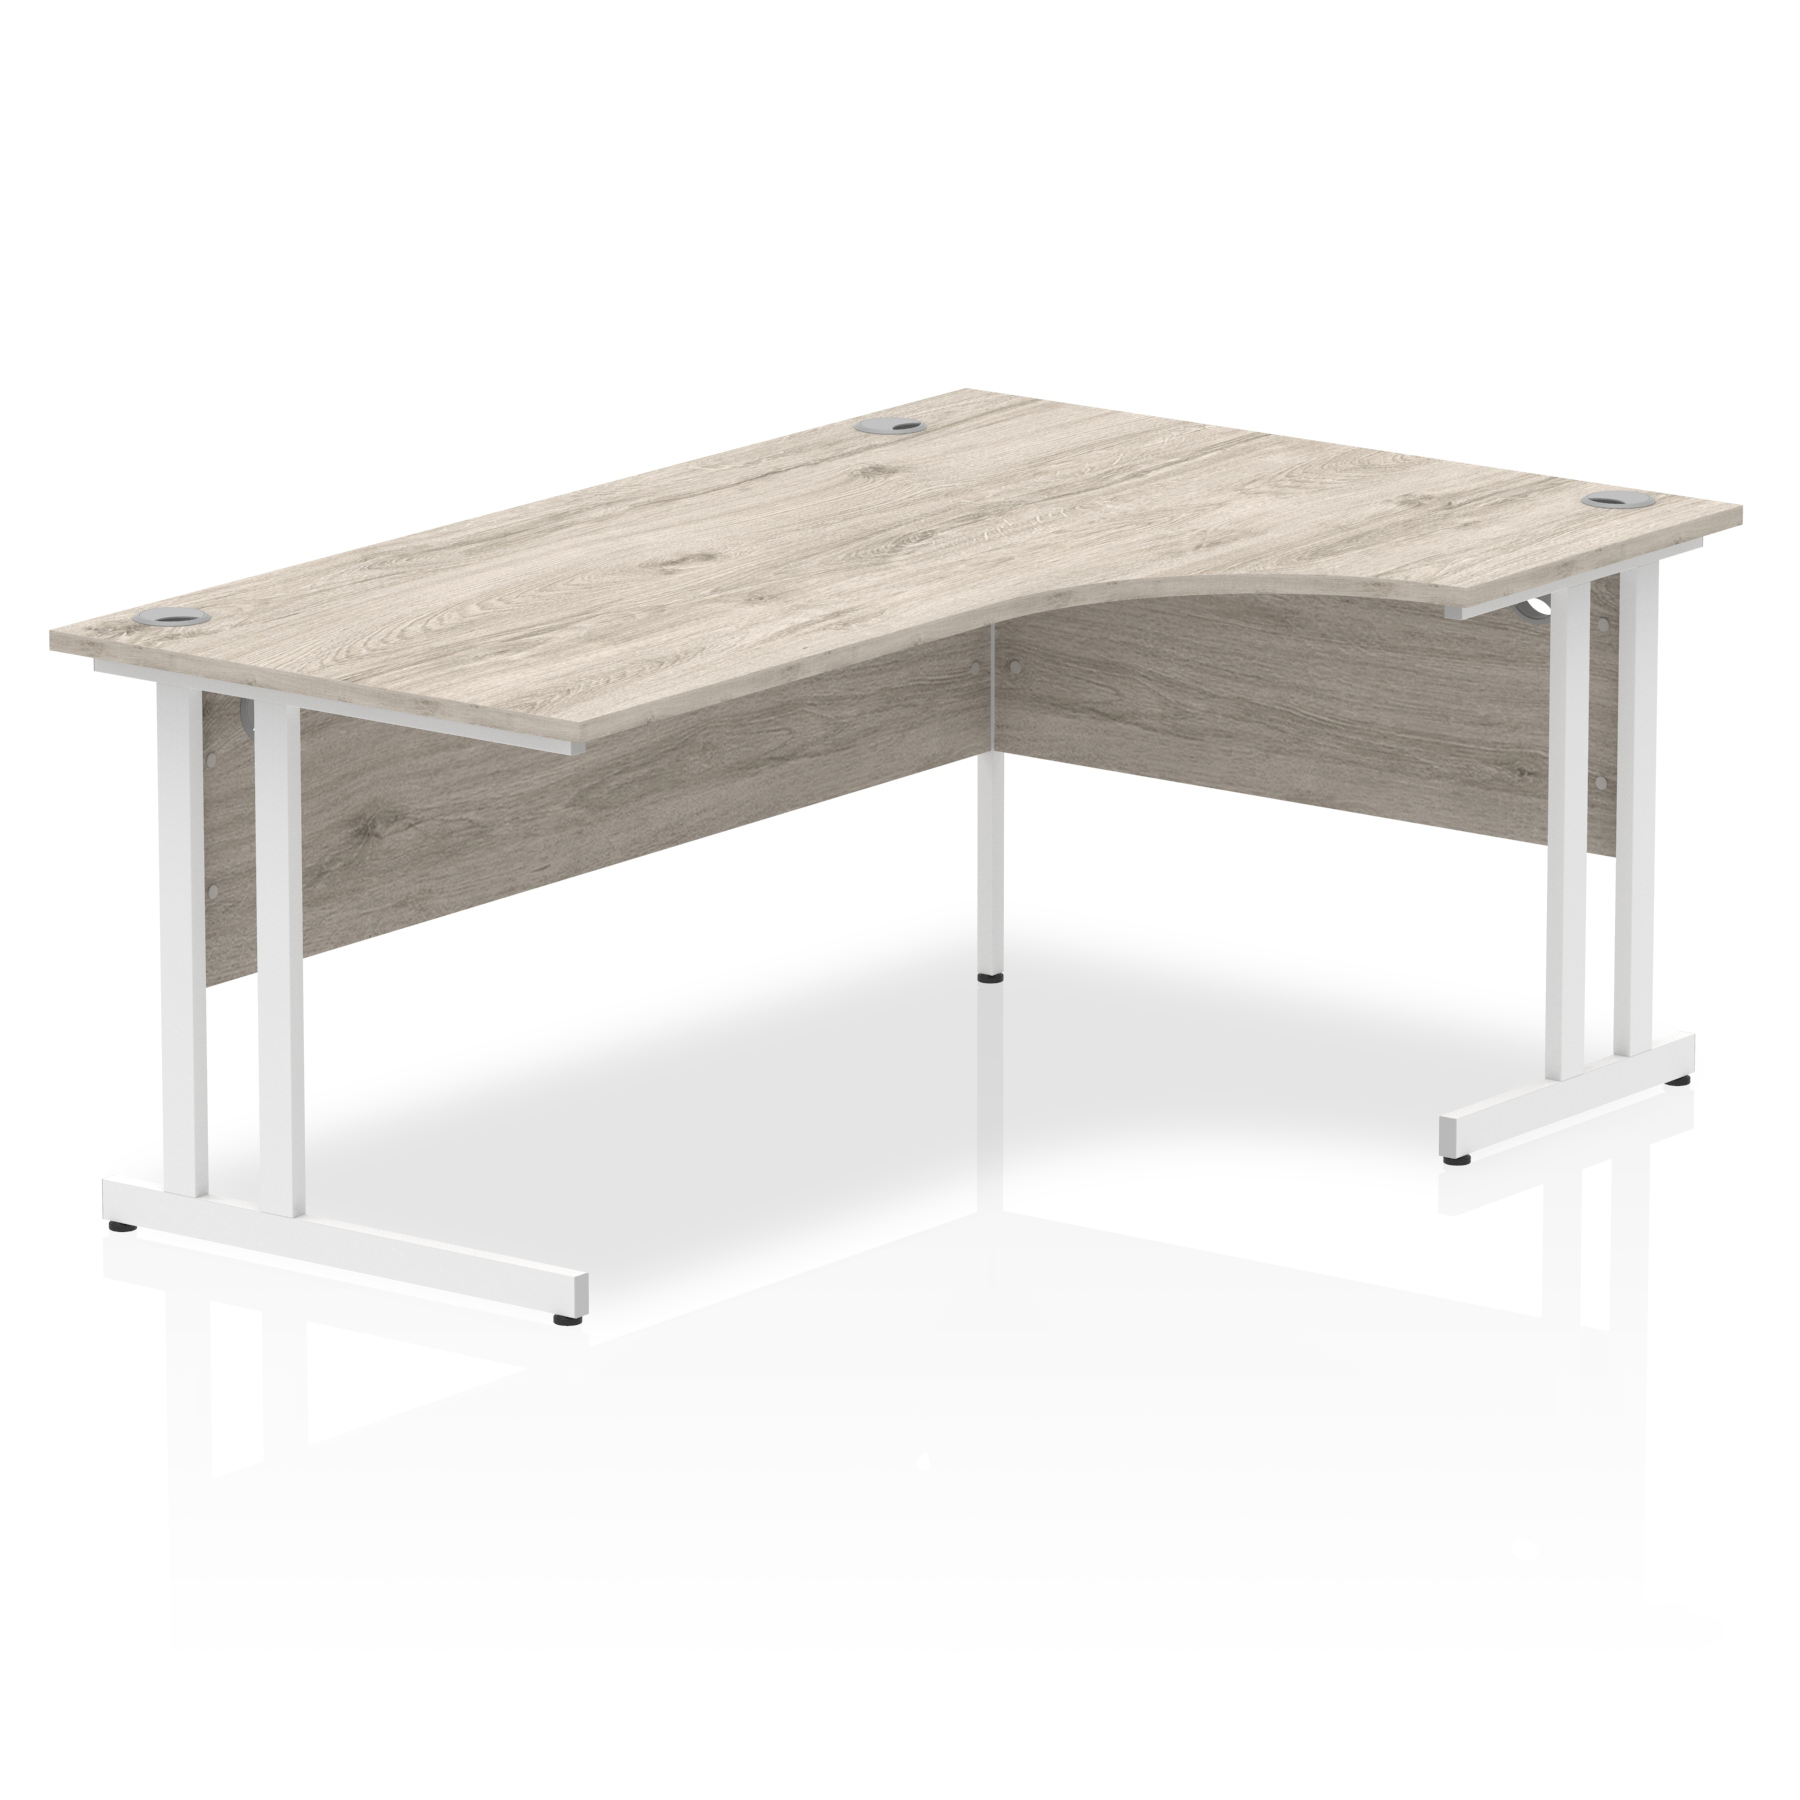 Desks Trexus Radial Desk Right Hand White Cantilever Leg 1800mm Grey Oak Ref I003529